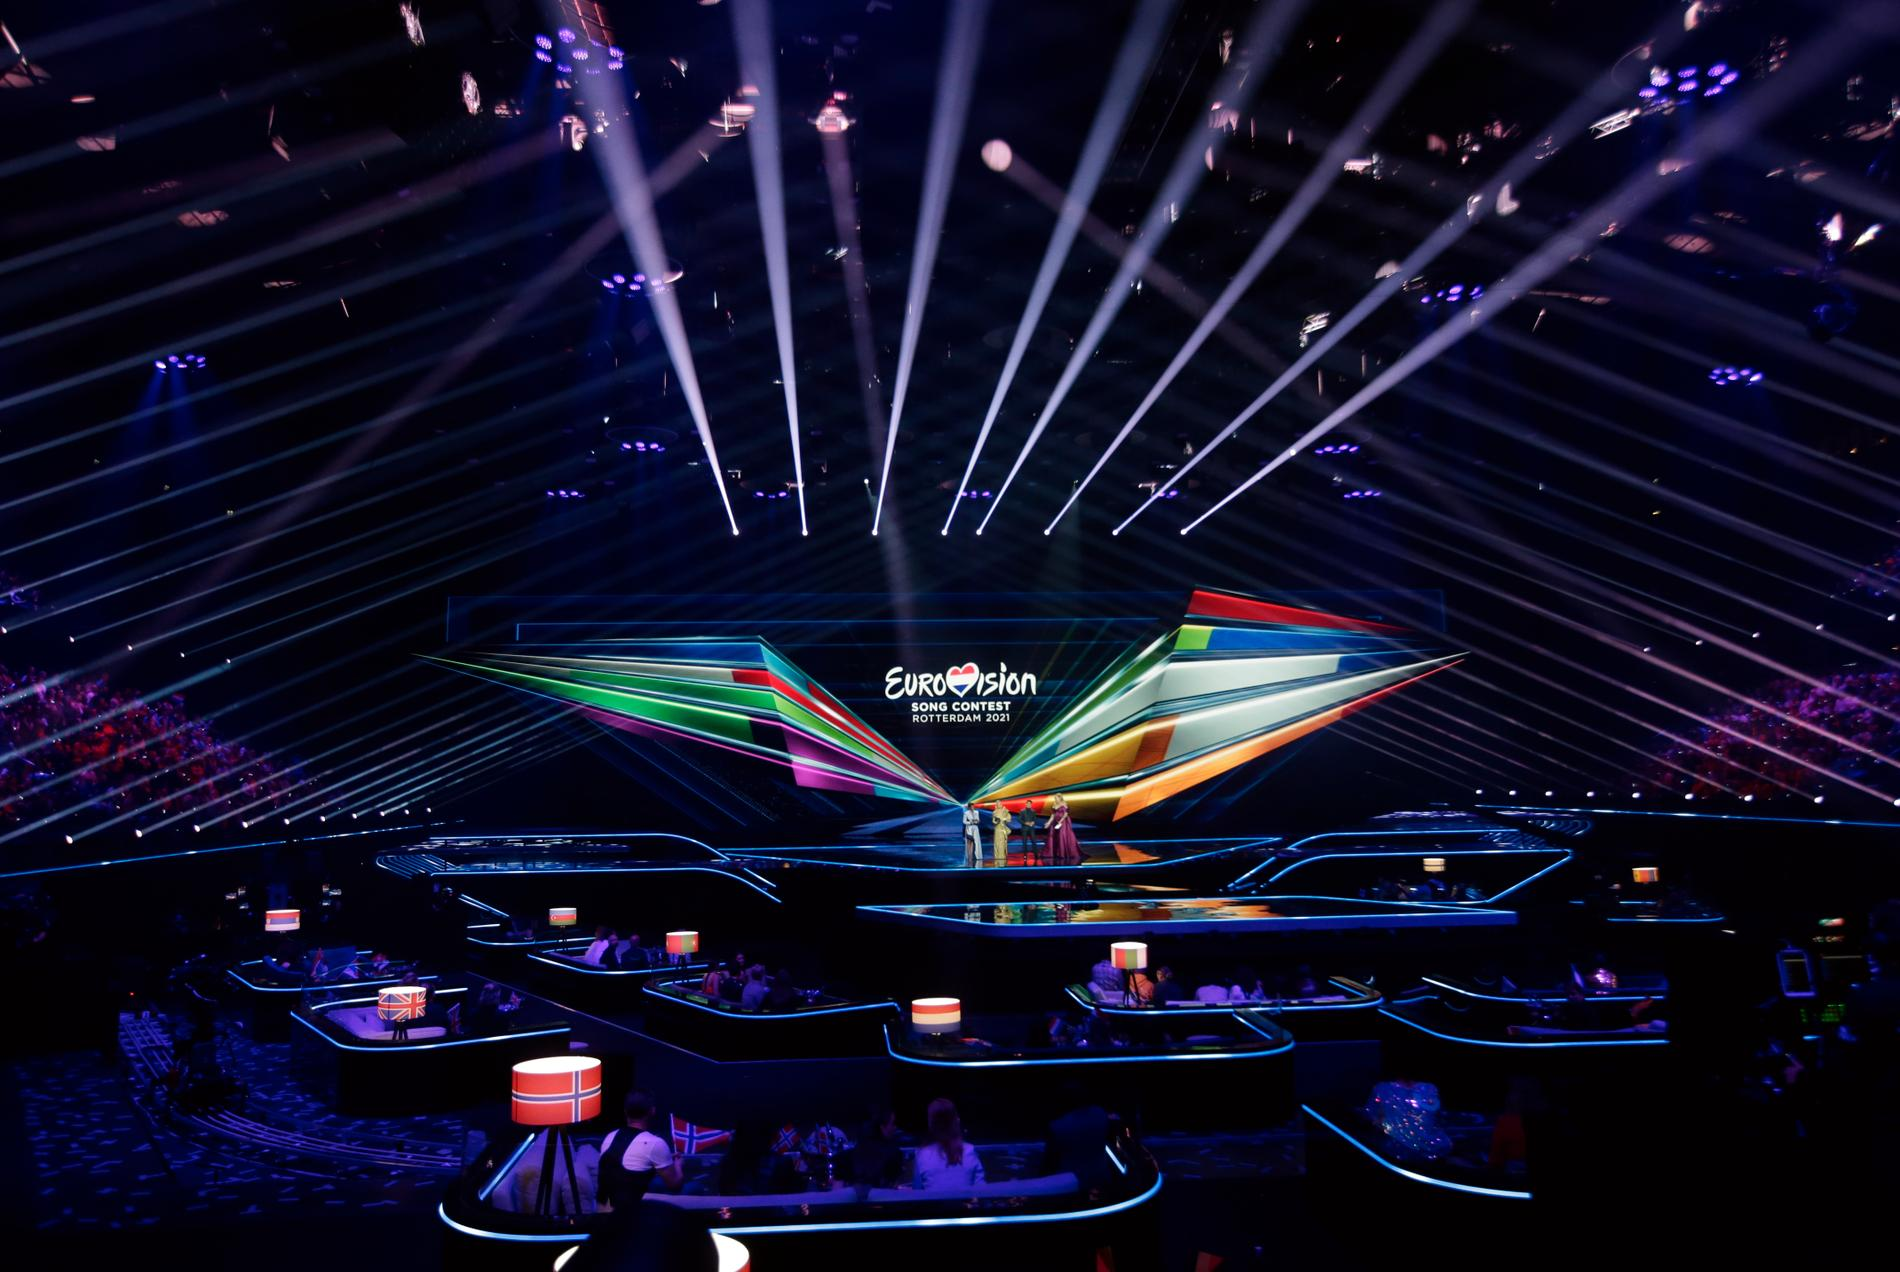 Eurovision song contest.